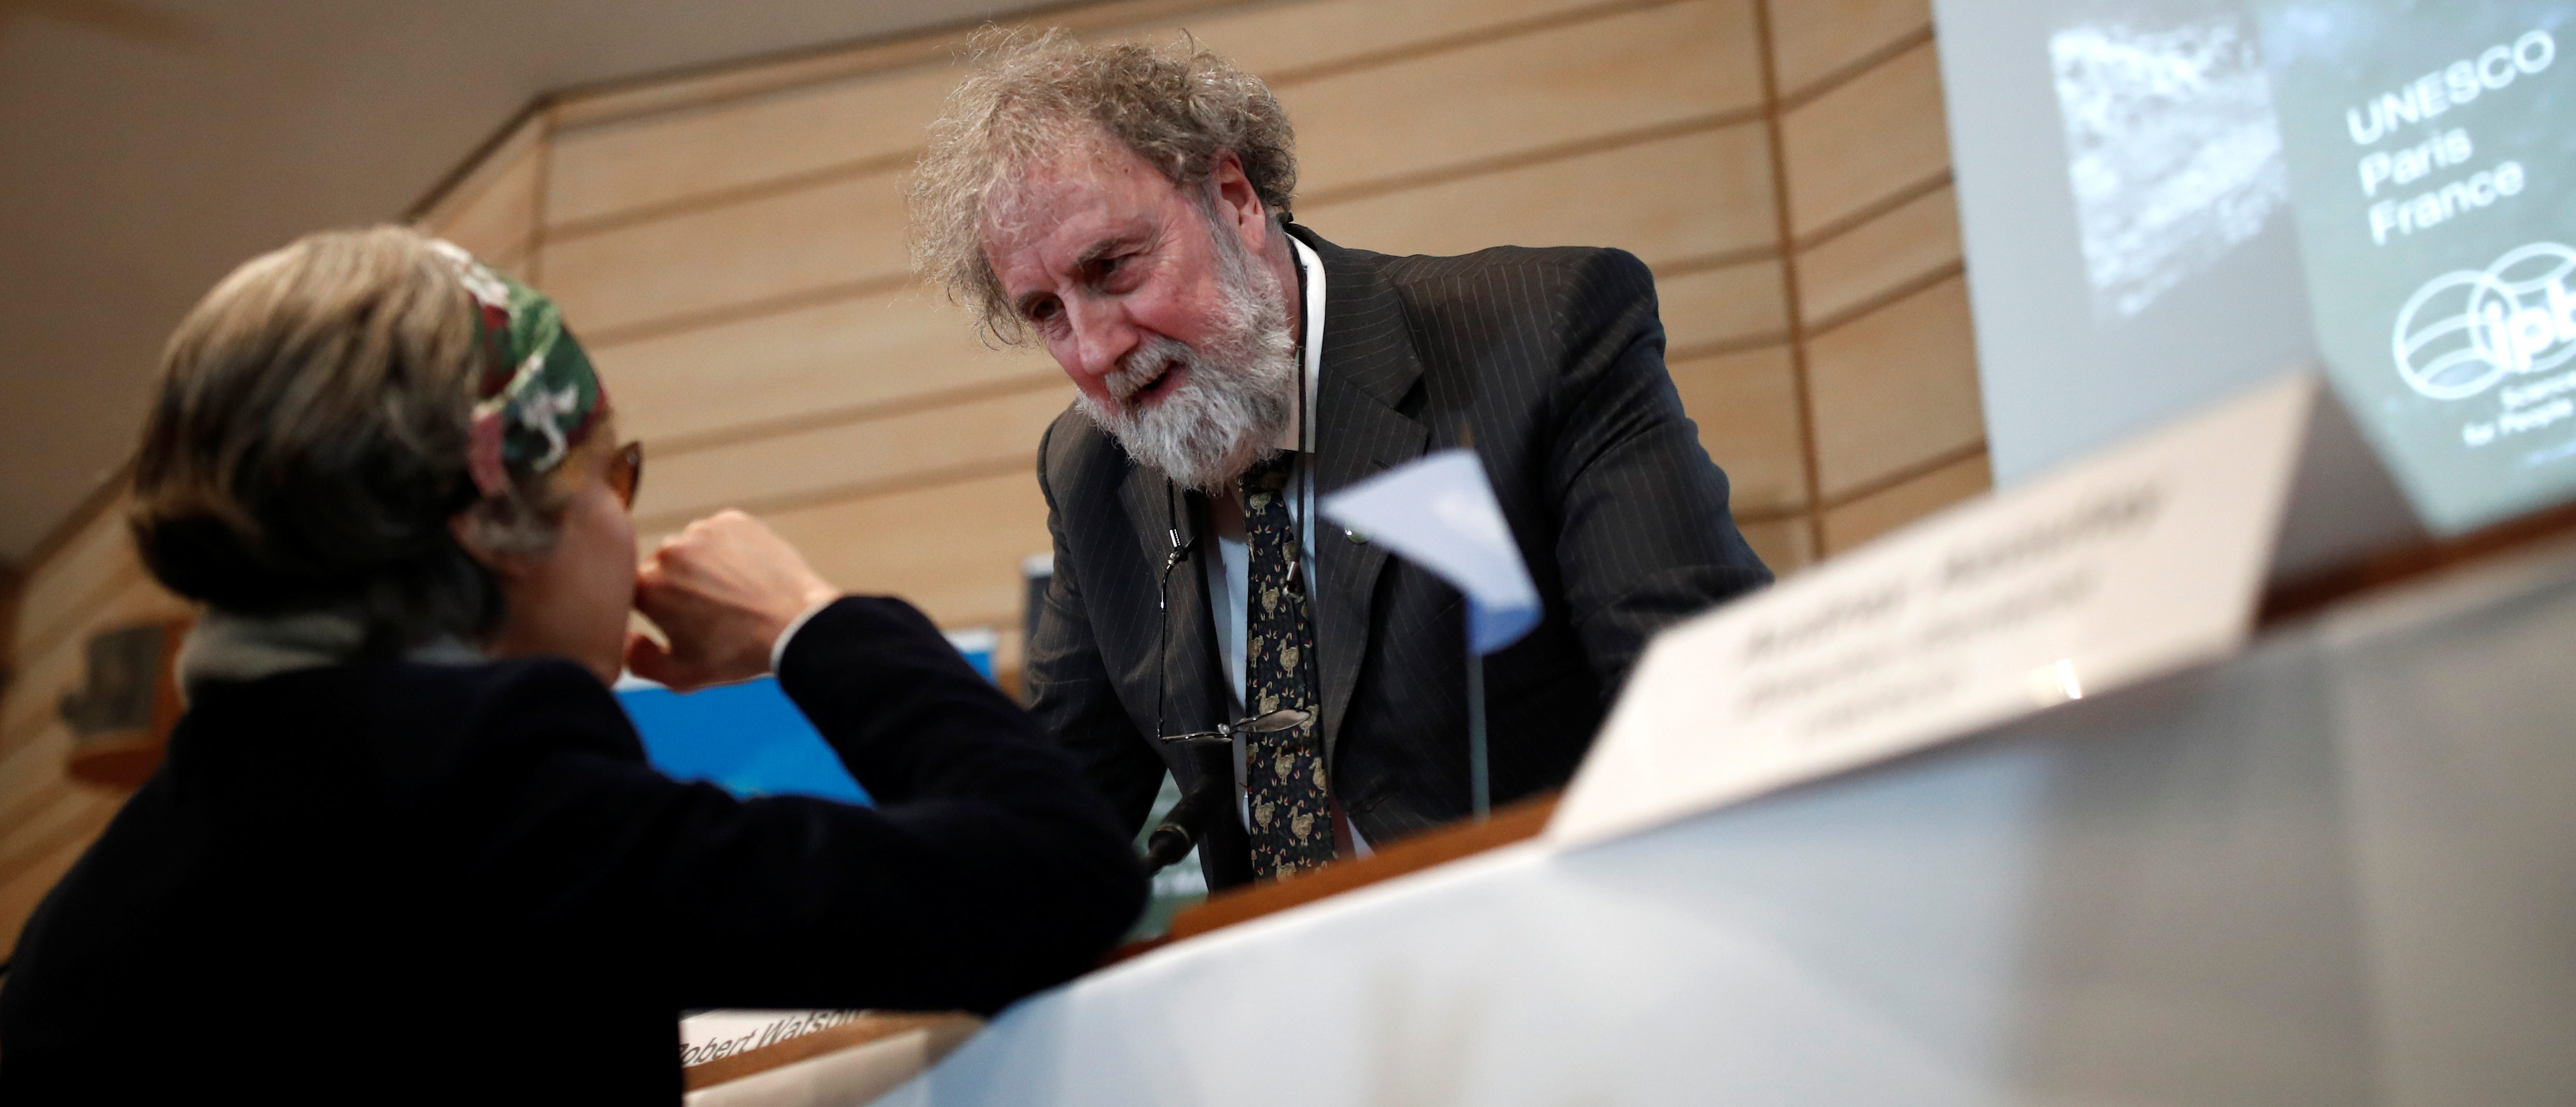 Former IPBES (Intergovernmental Science-Policy Platform on Biodiversity and Ecosystem Services) Chair Robert Watson attends a news conference on the launching of a landmark report on the damage done by modern civilisation to the natural world by the IPBES at the UNESCO headquarters in Paris, France, May 6, 2019. REUTERS/Benoit Tessier.